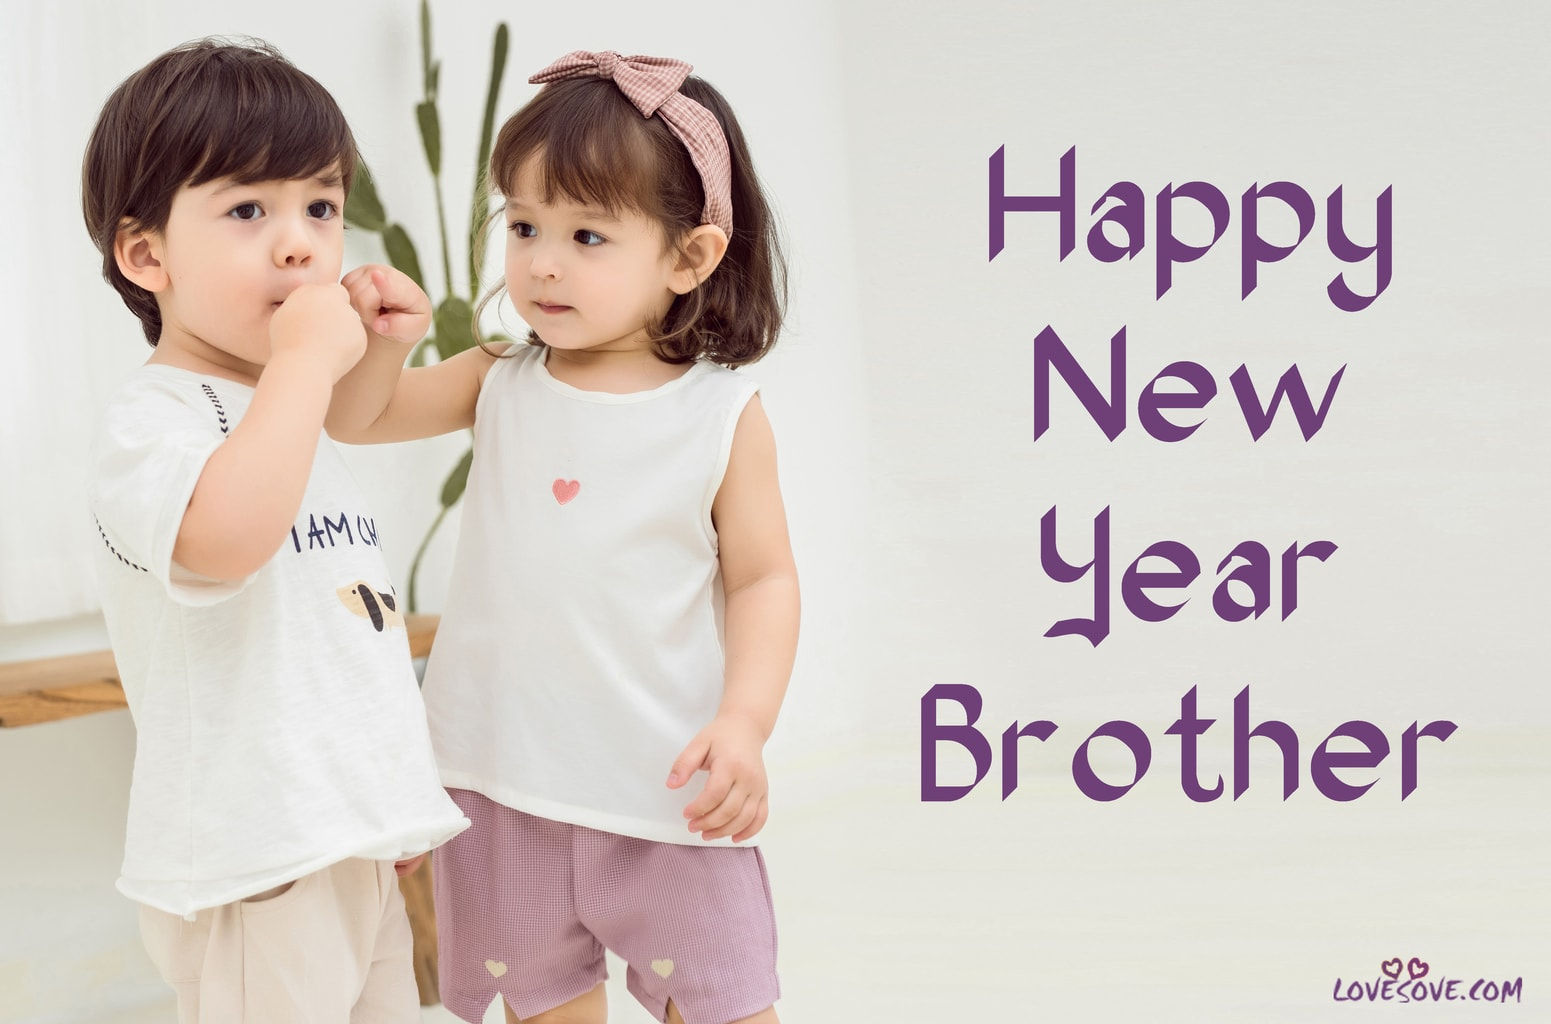 happy new year quotes, Happy New Year To Brother, Happy New Year Prayer & Wish for Brother, Happy New Year To You My Brother, Happy New Year Wish For Brother, happy new year shayari for brother in hindi, New Year Wishes for Brother